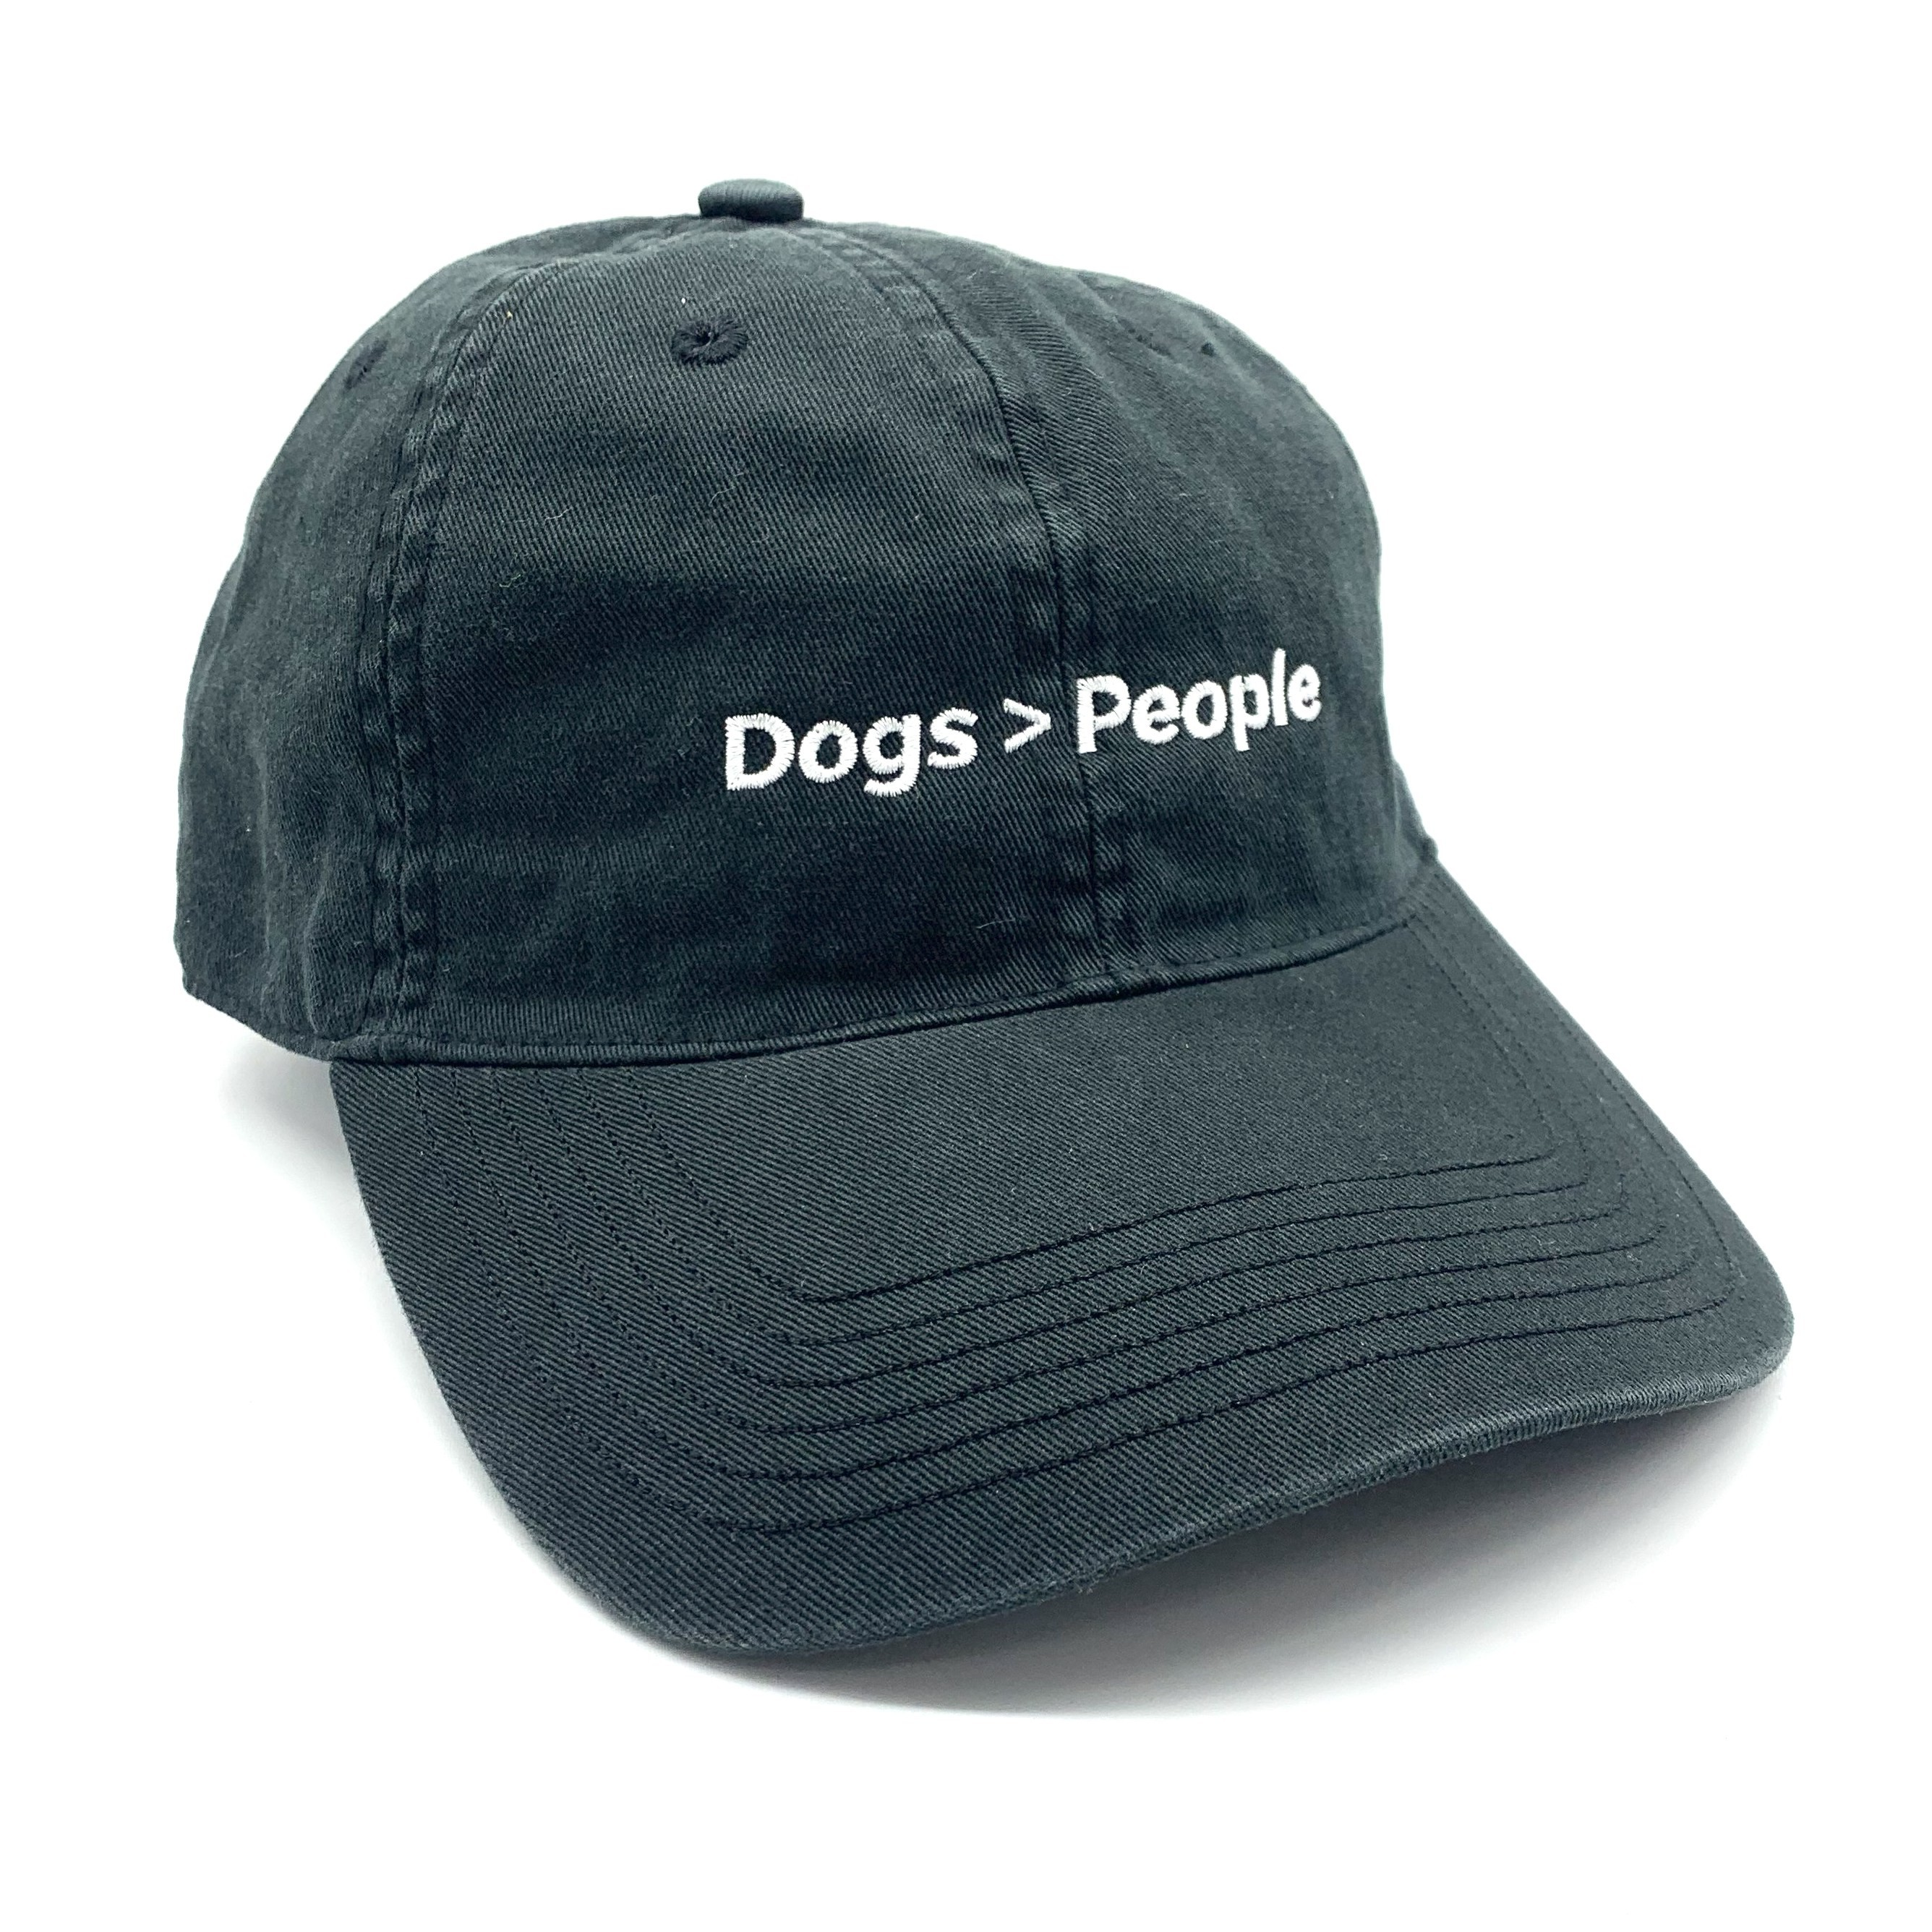 DOGS ARE BETTER BLACK DAD HAT